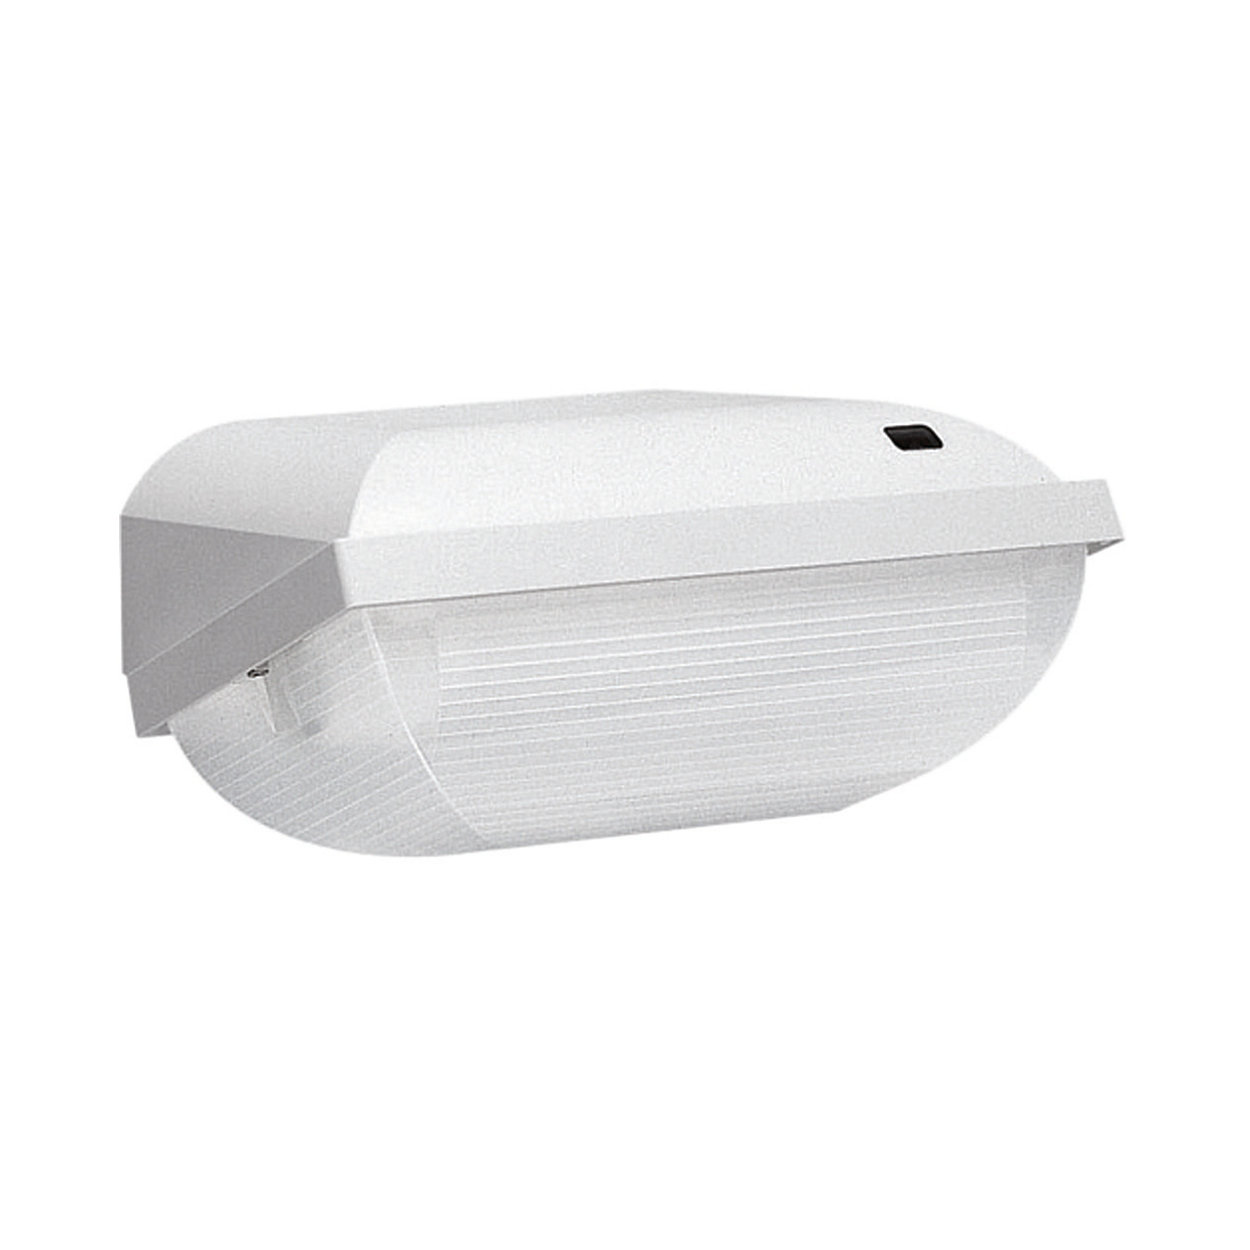 FWC110/120/121 and XWC120/121 – all-night security